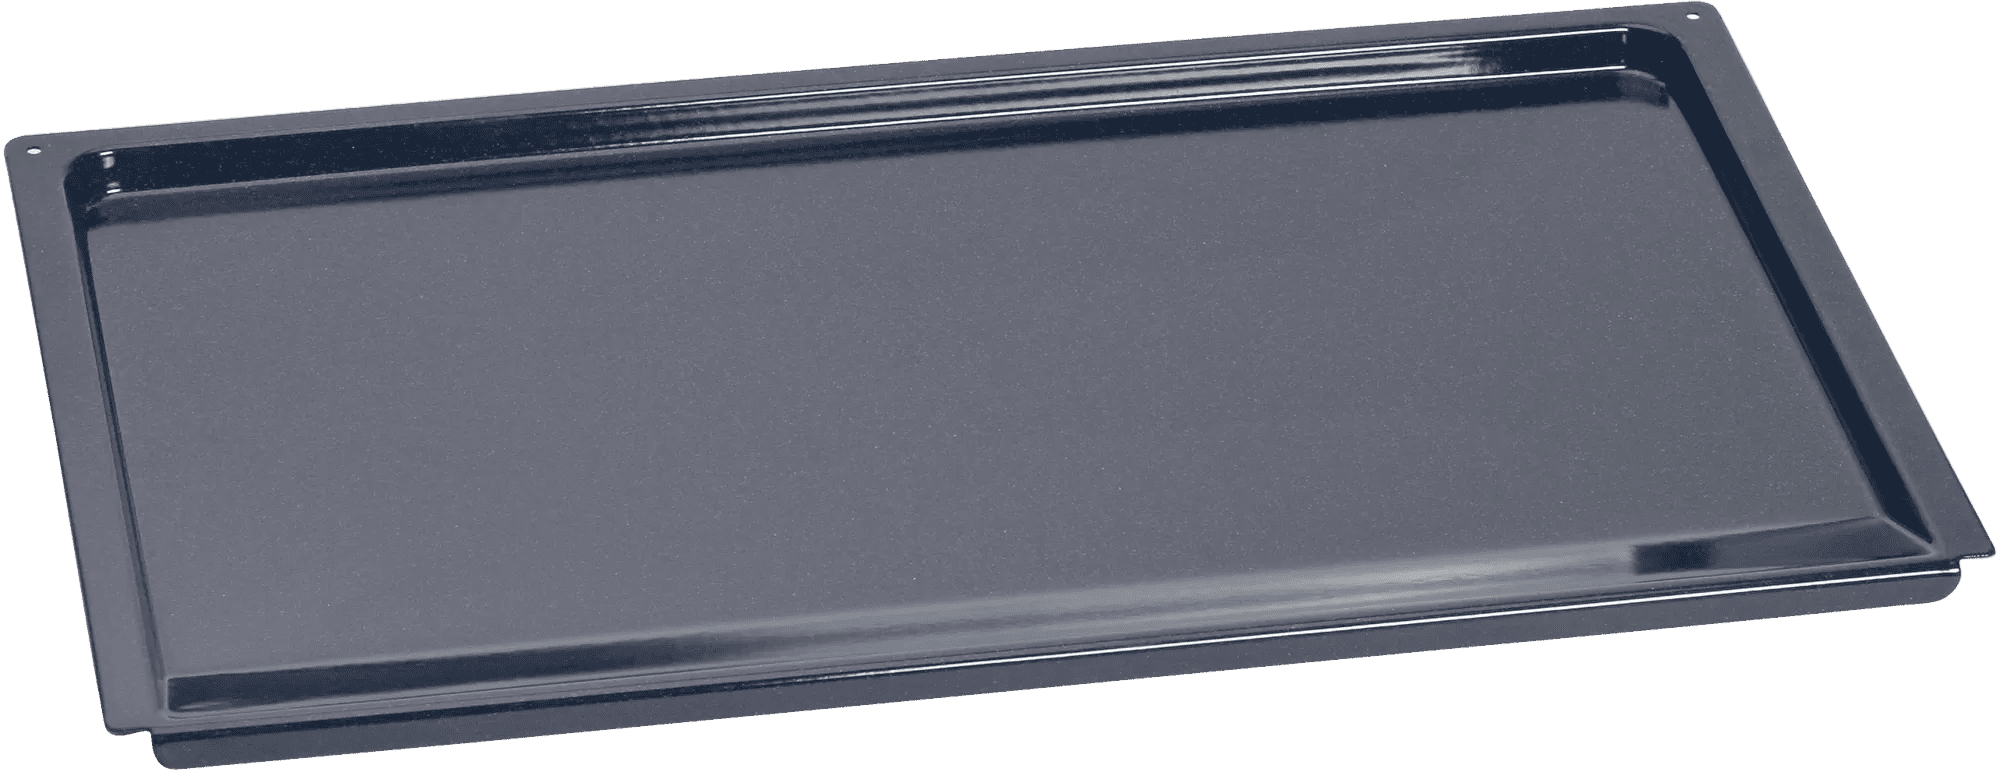 GaggenauBaking Tray Kb032062